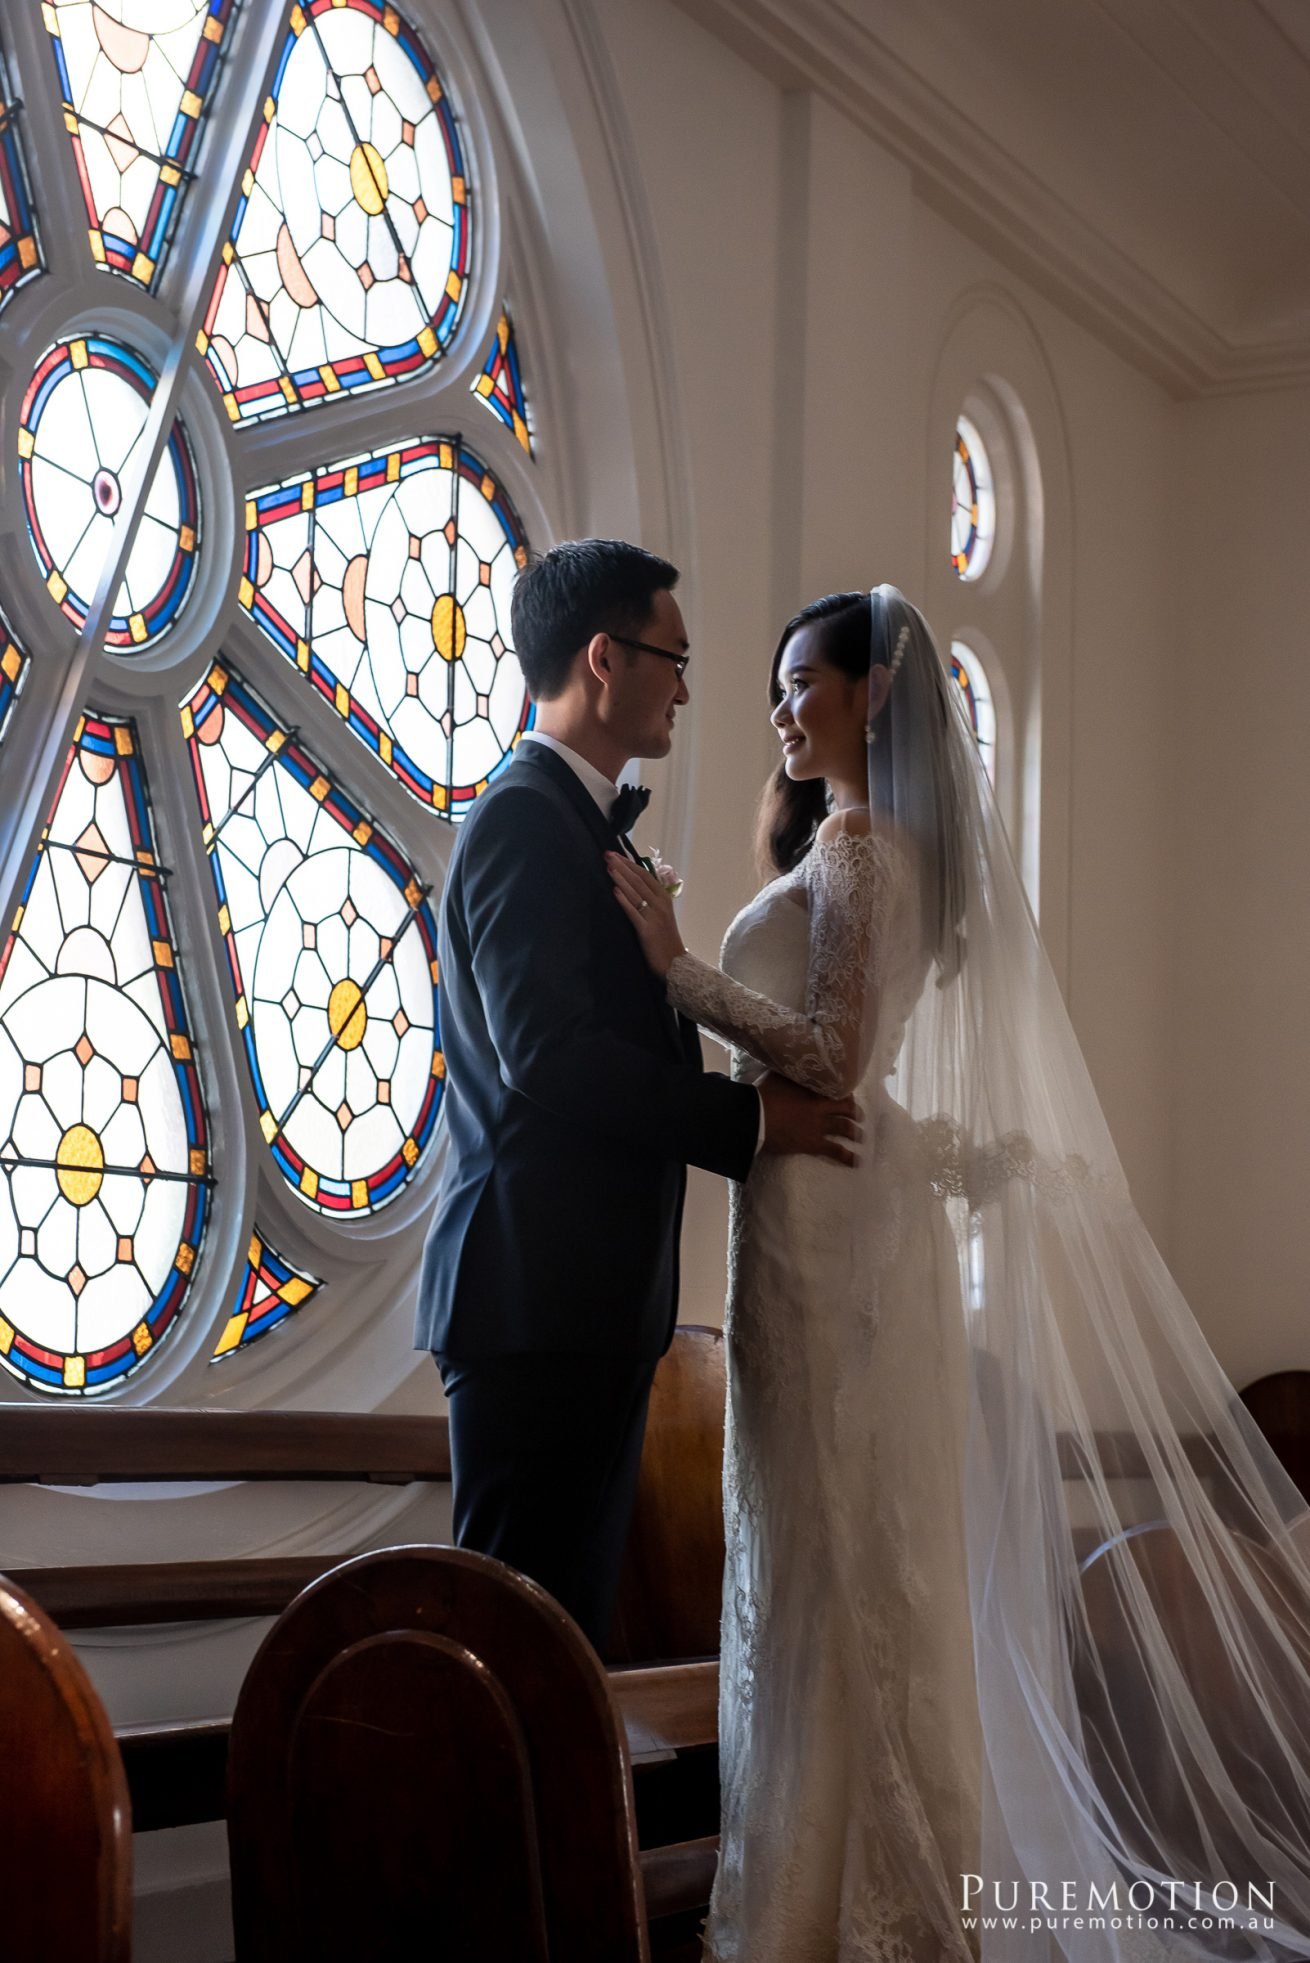 190413 Puremotion Wedding Photography Brisbane Tabernacle Baptist Church Blackbird Alex Huang PeggyAaron_post-0062